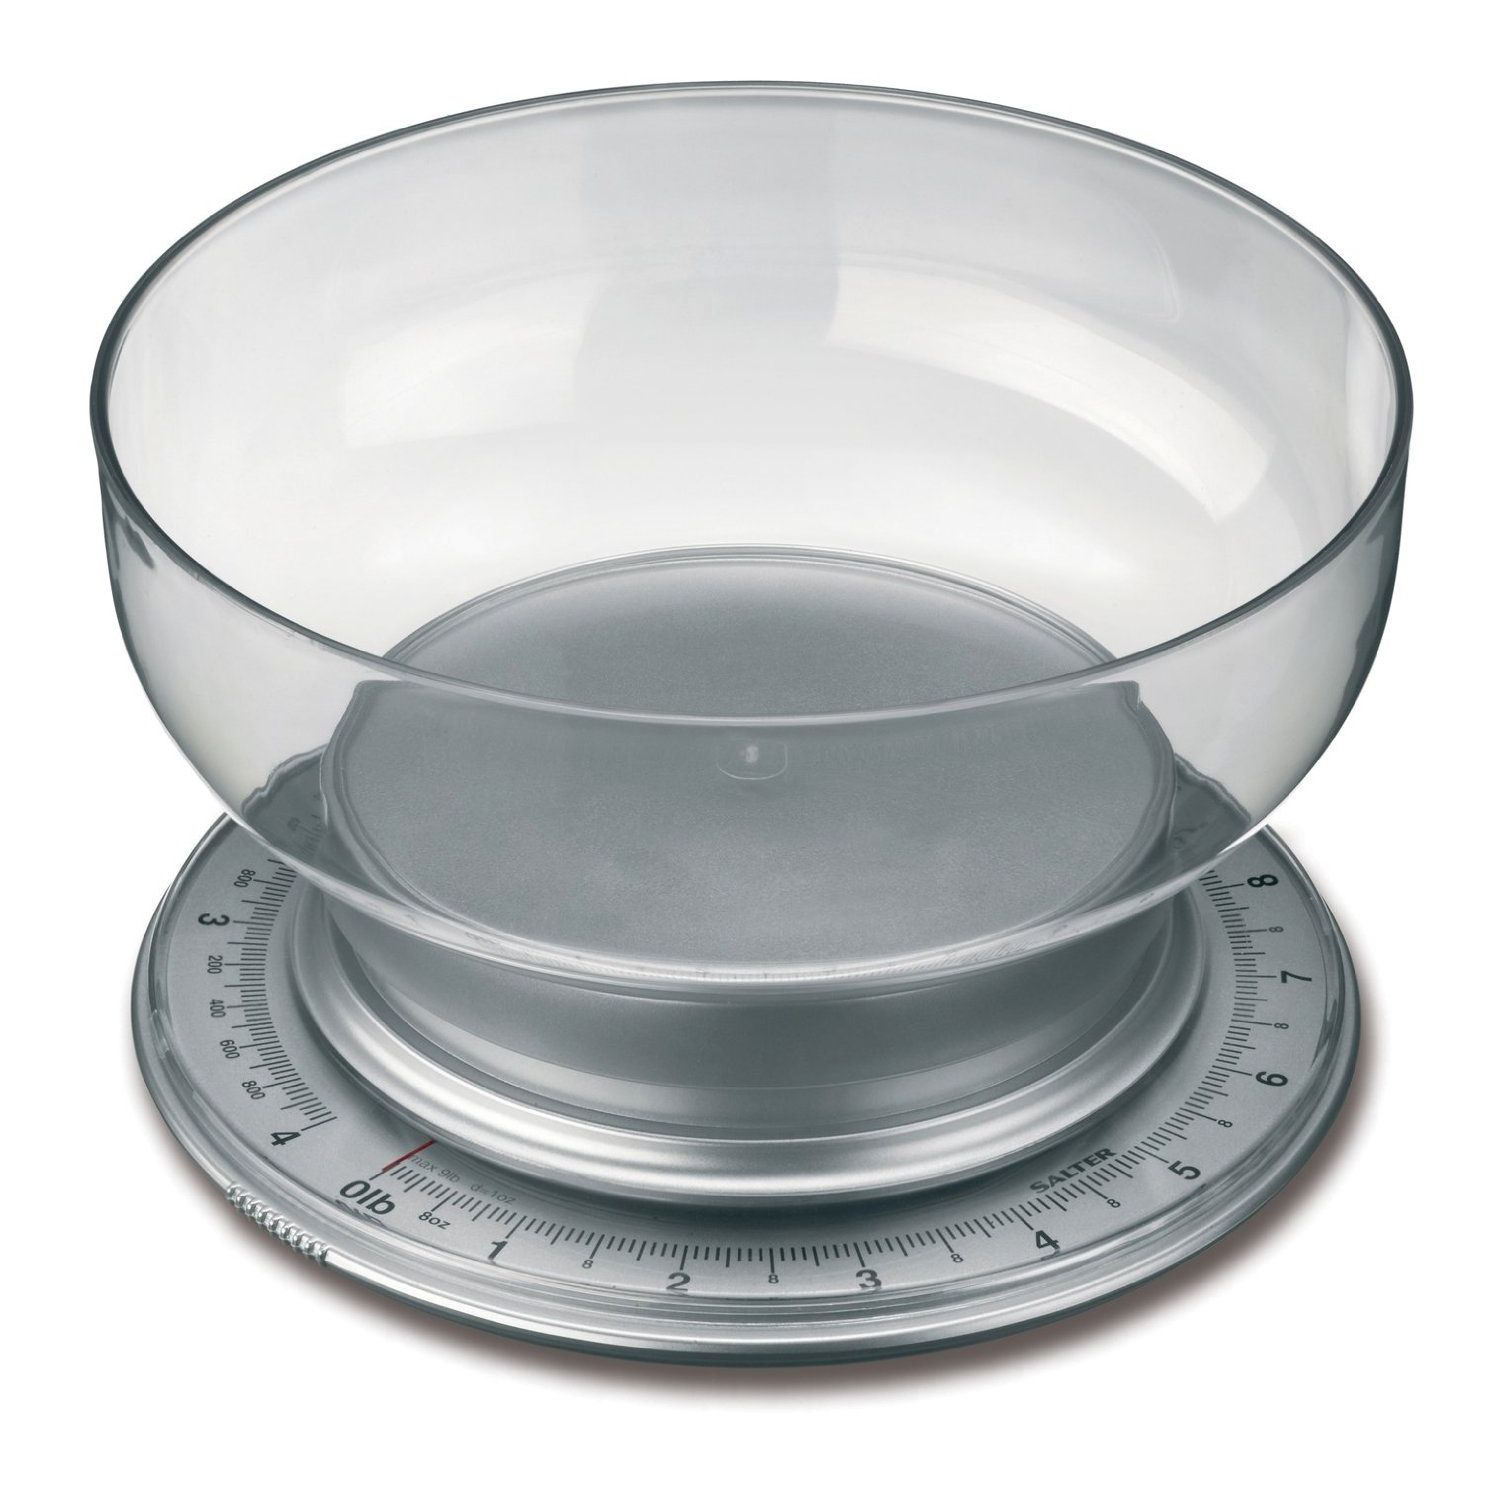 Salter Silver Mechanical Multiweigh Kitchen Scale